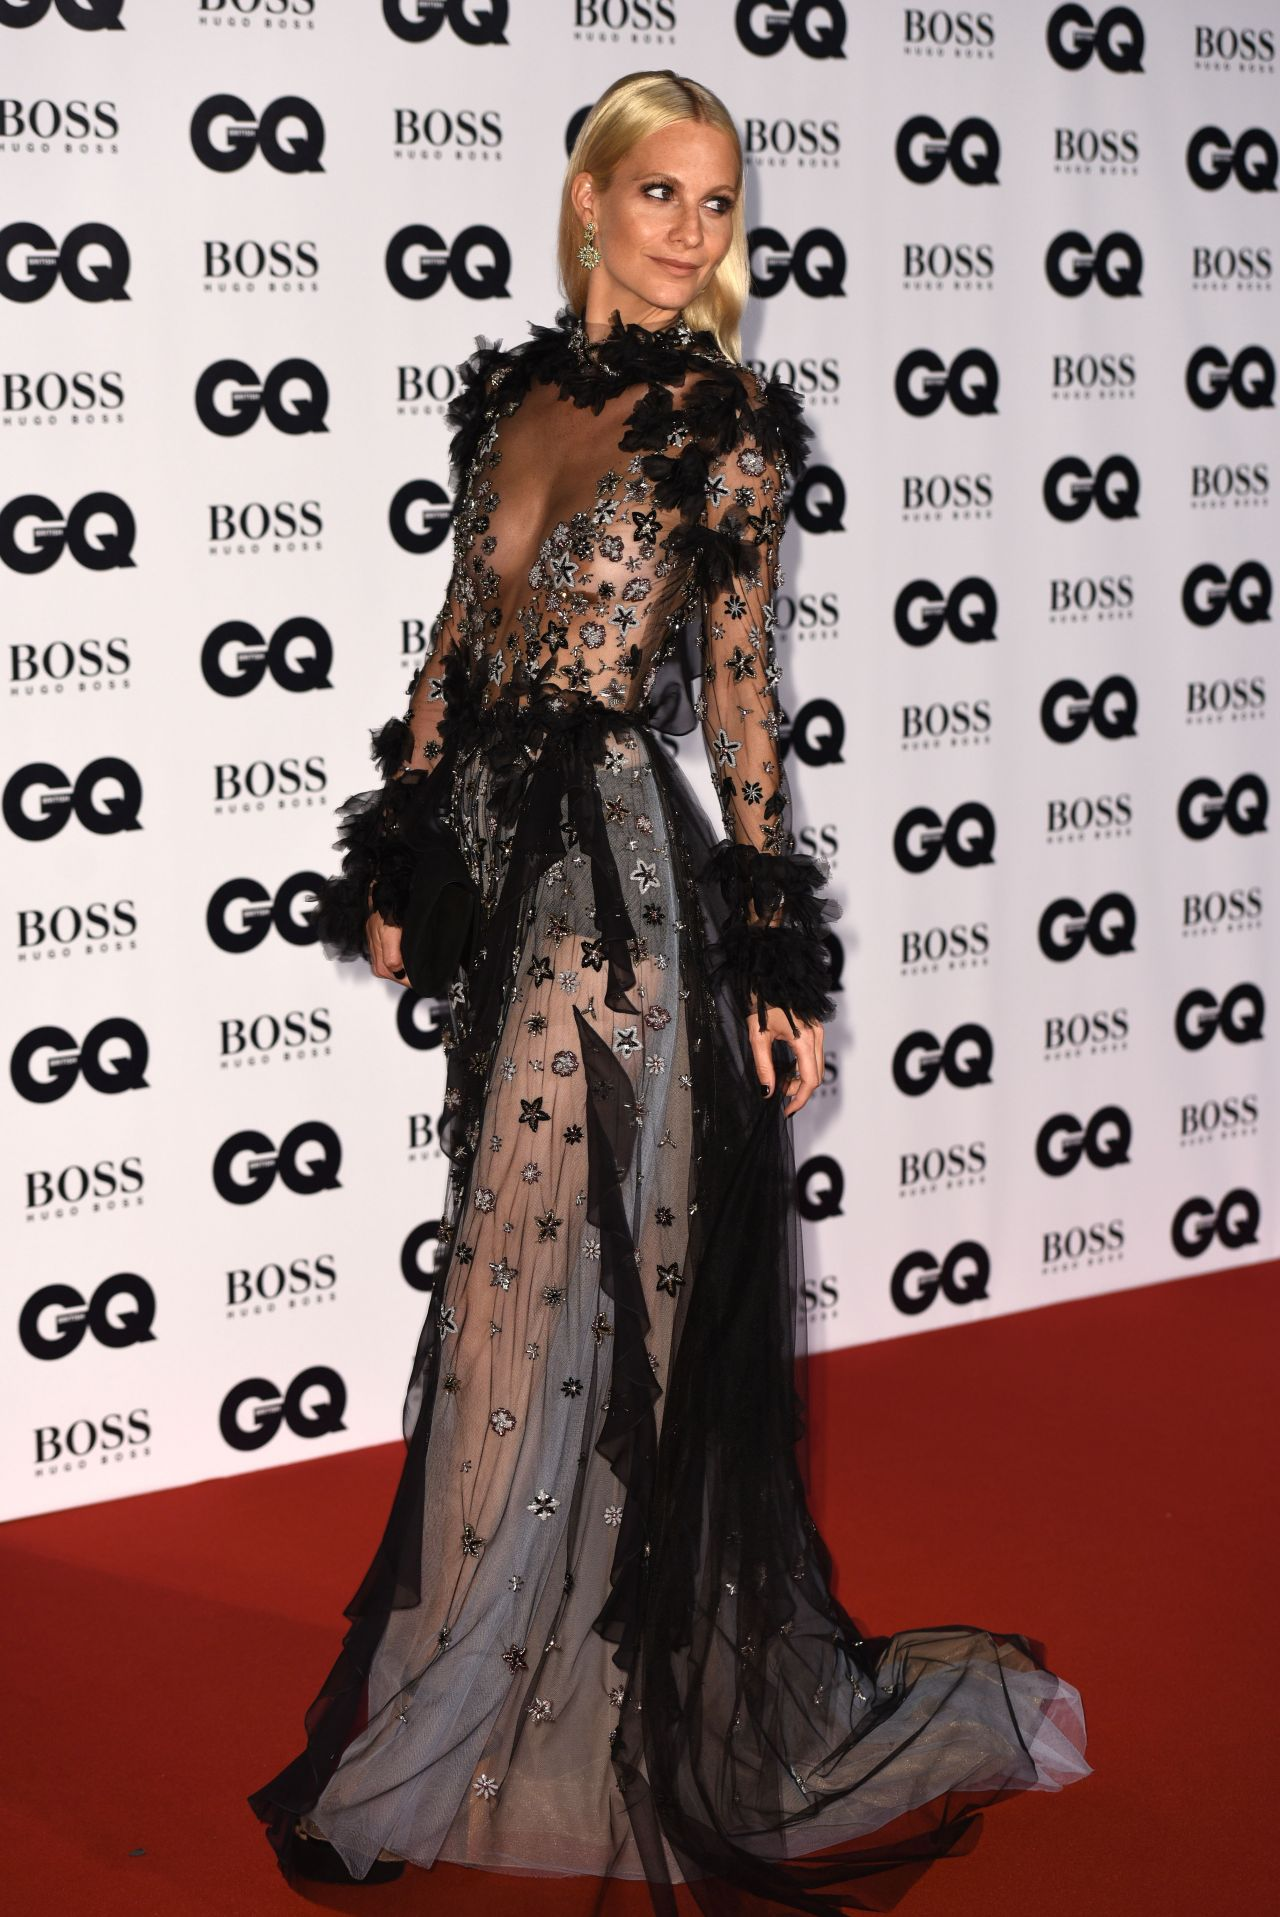 Poppy delevingne gq men of the year awards in london - 2019 year